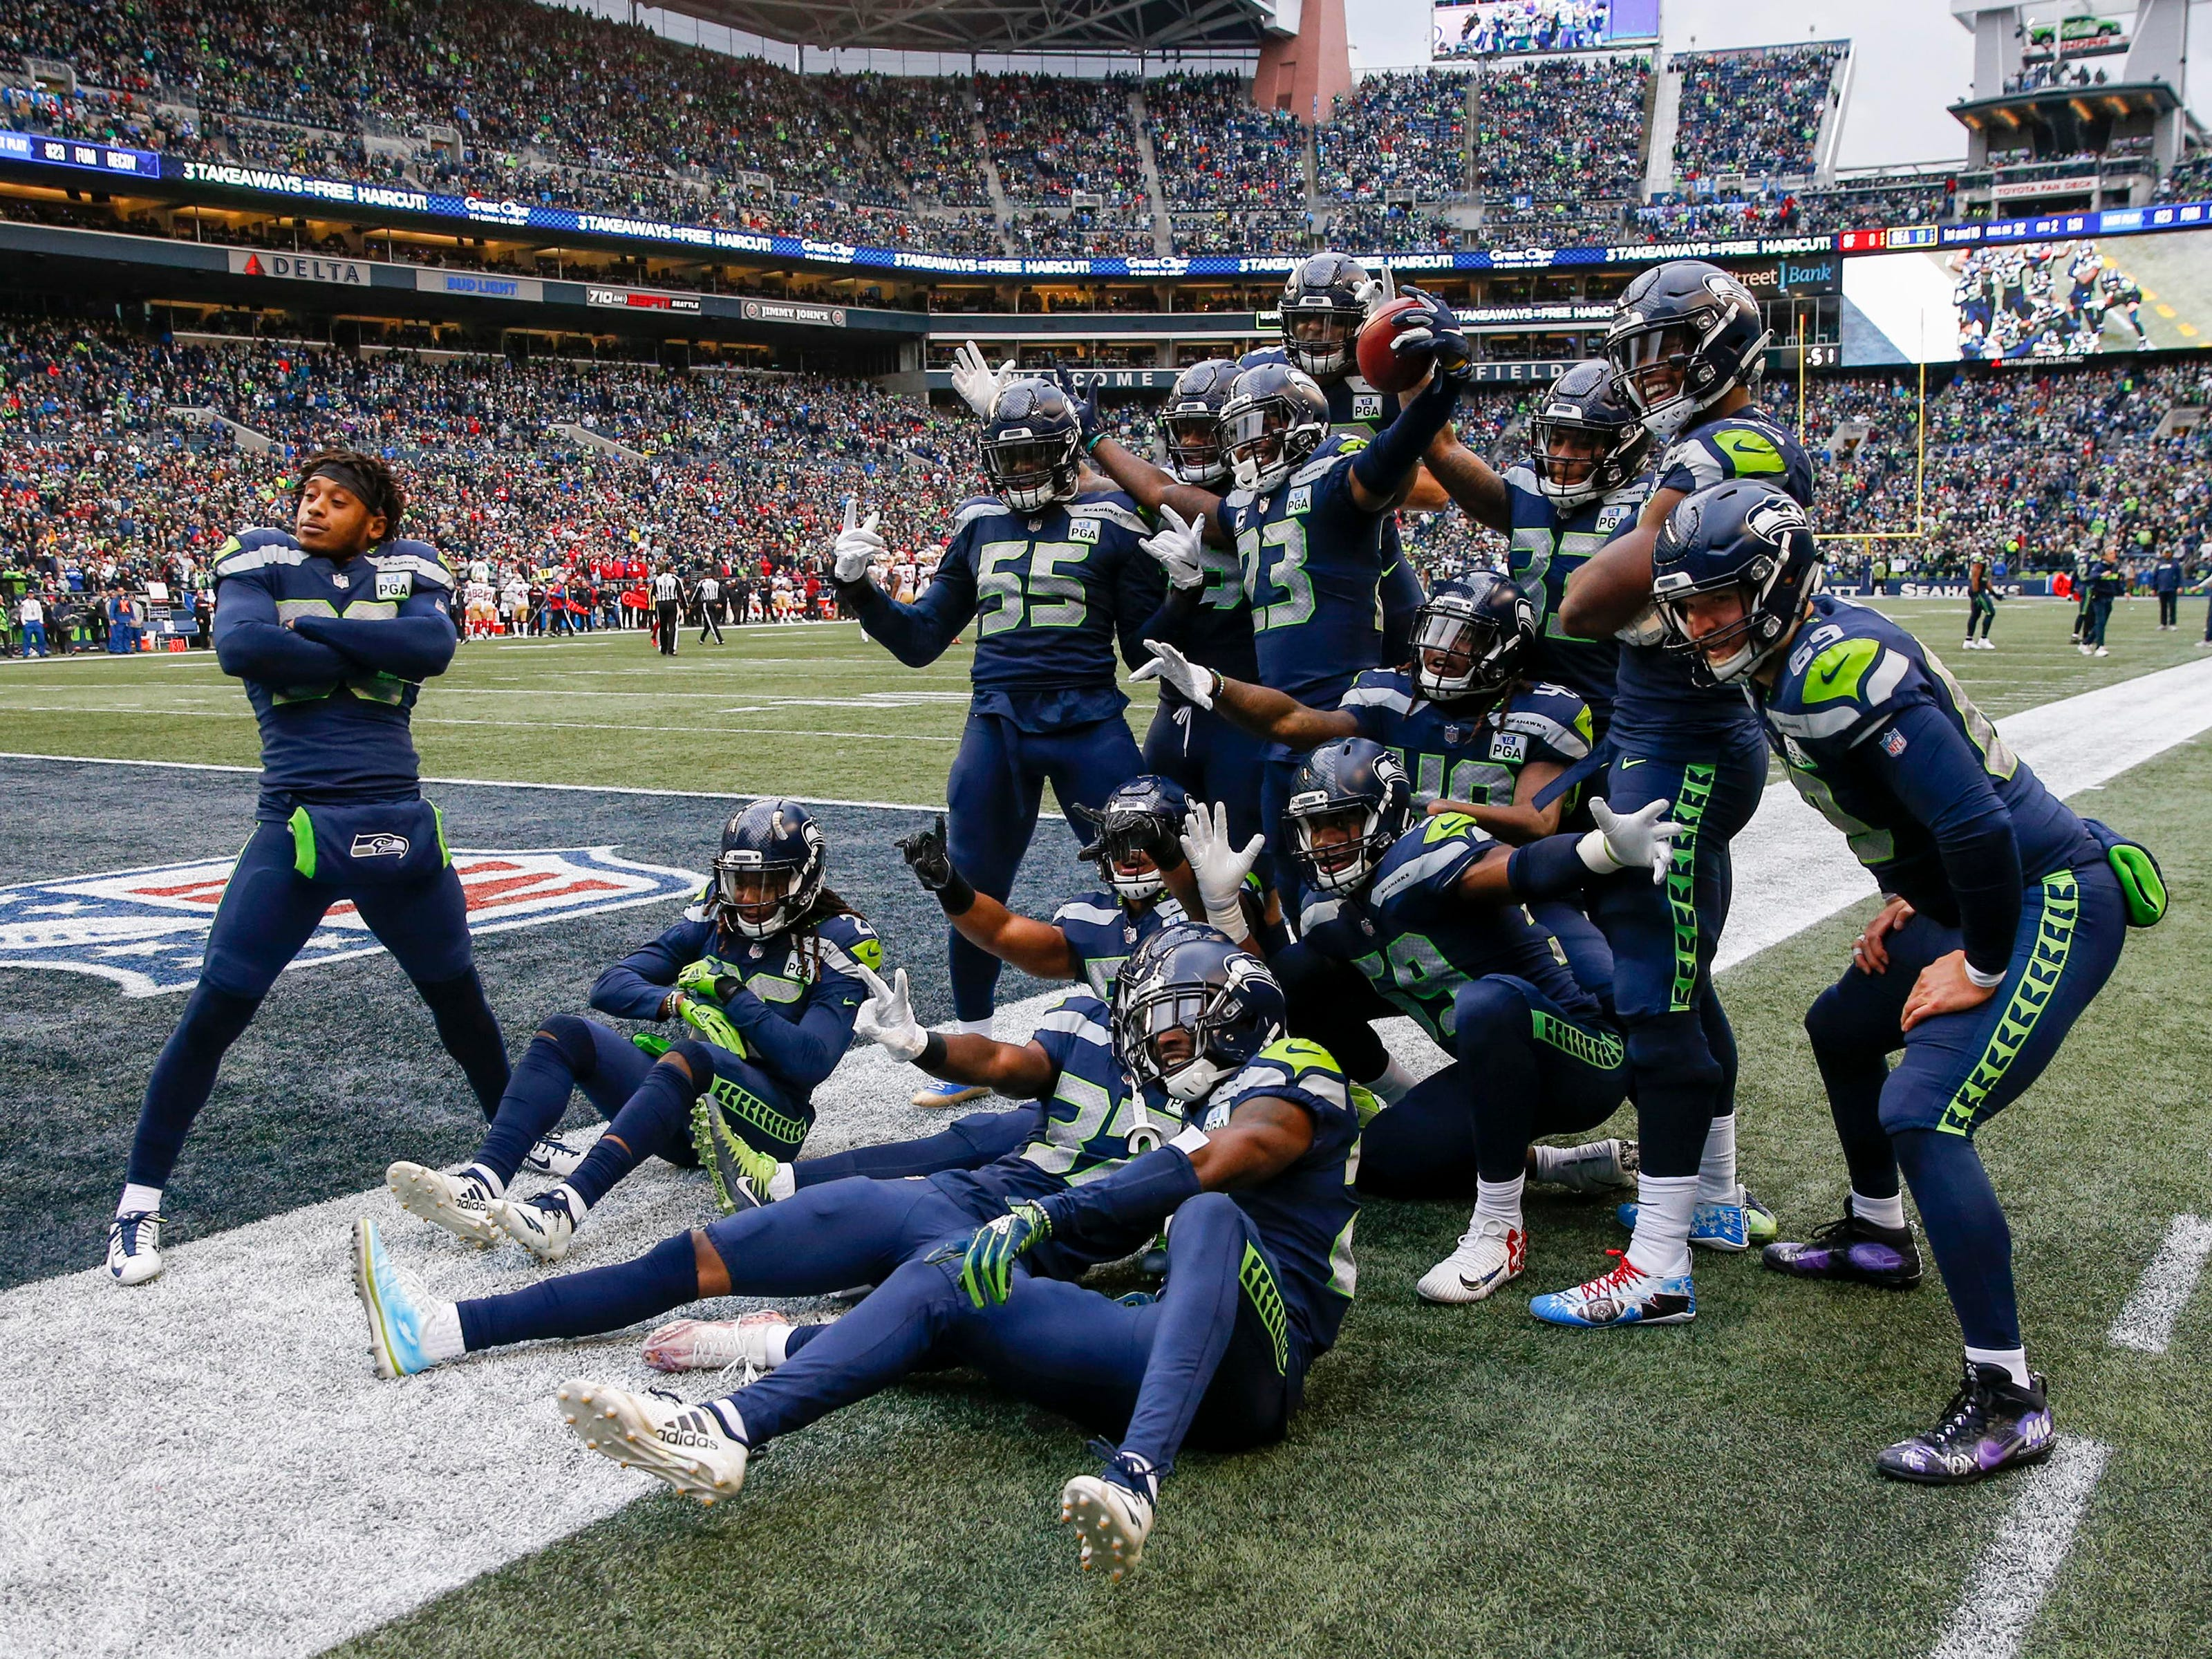 Members of the Seattle Seahawks special teams celebrate after recovering a fumble by the San Francisco 49ers during the second quarter at CenturyLink Field.